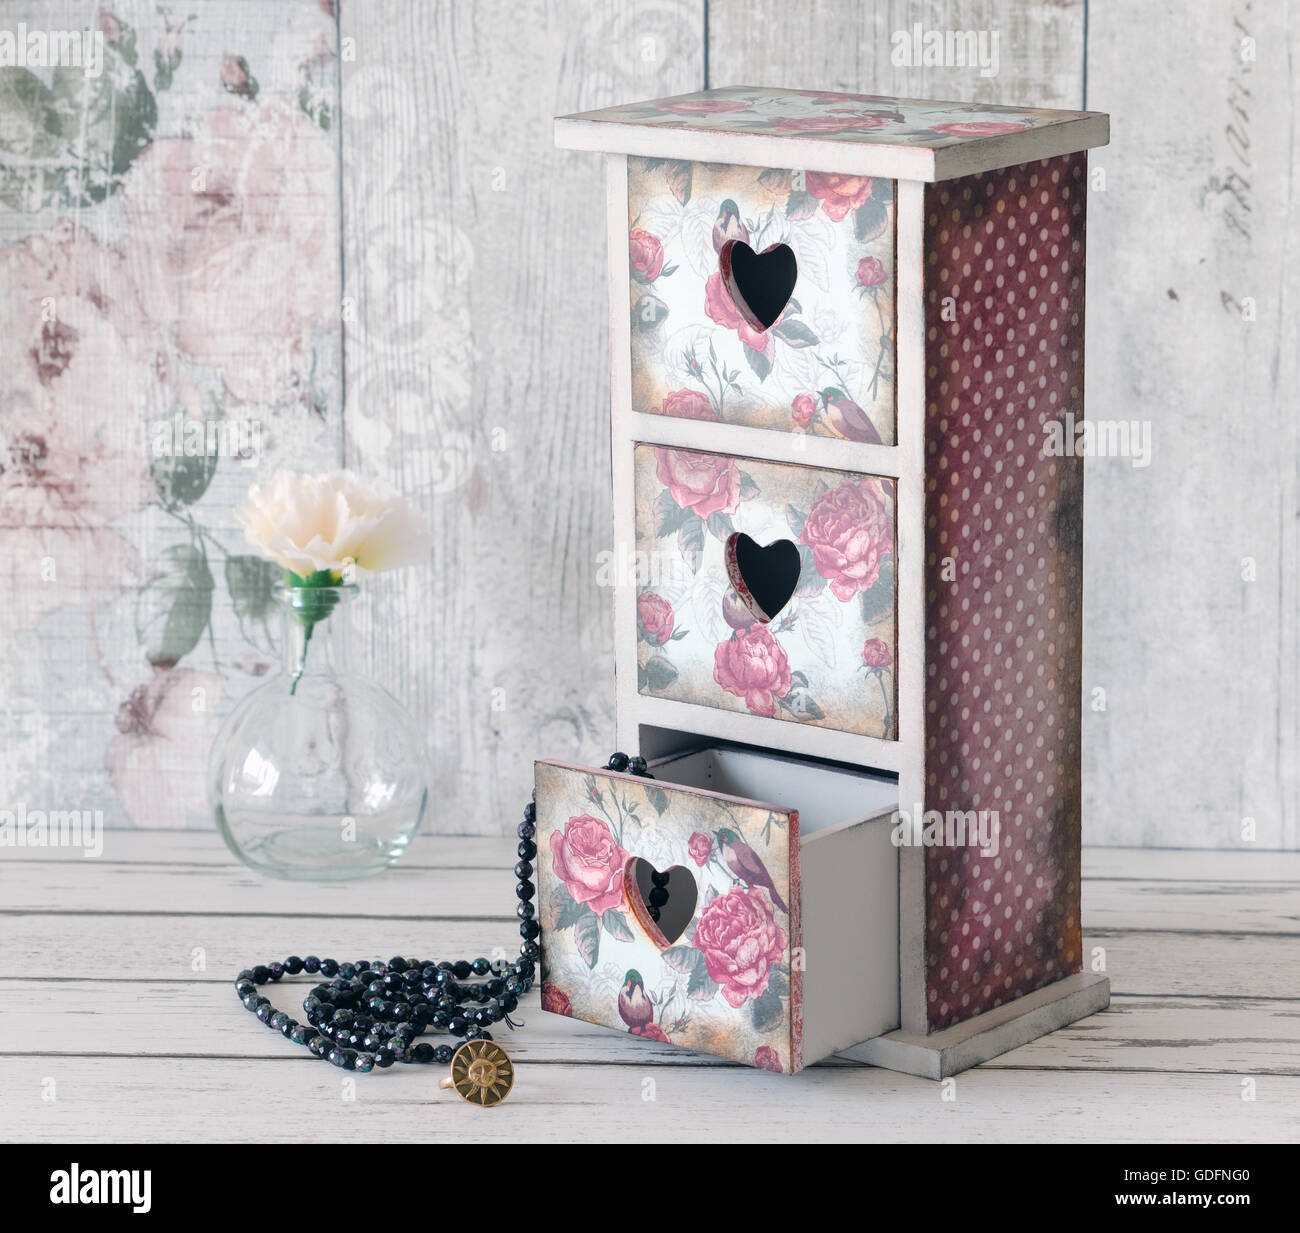 A shabby chic mini chest of drawers decoupaged in a vintage floral pattern - Stock Image